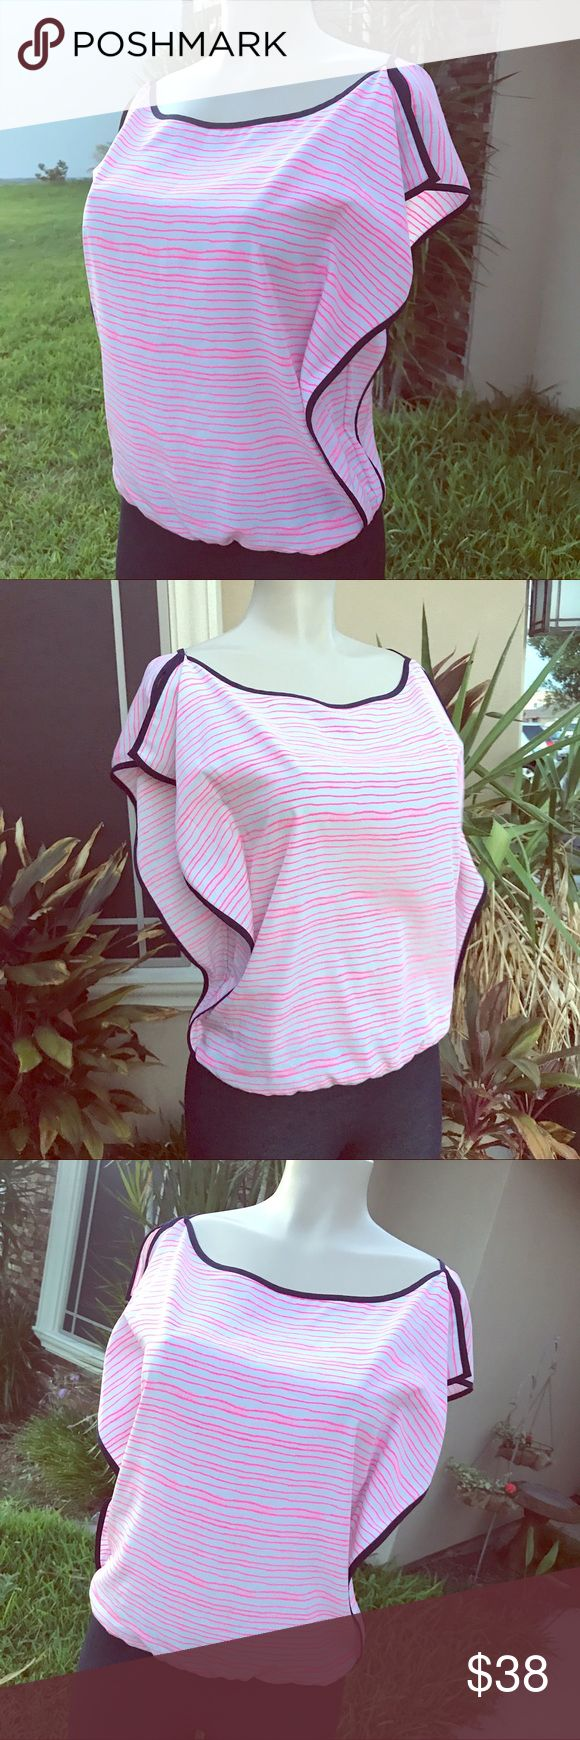 EUC Armani Silky top with stripes very stylish Like new! Super comfy stylish to buy Armani! Smooth silky fabric, soft and comfortable. Love the Navy and neon pink combo! Works great with denim or leggings! Size Small true to size. A/X Armani Exchange Tops Blouses